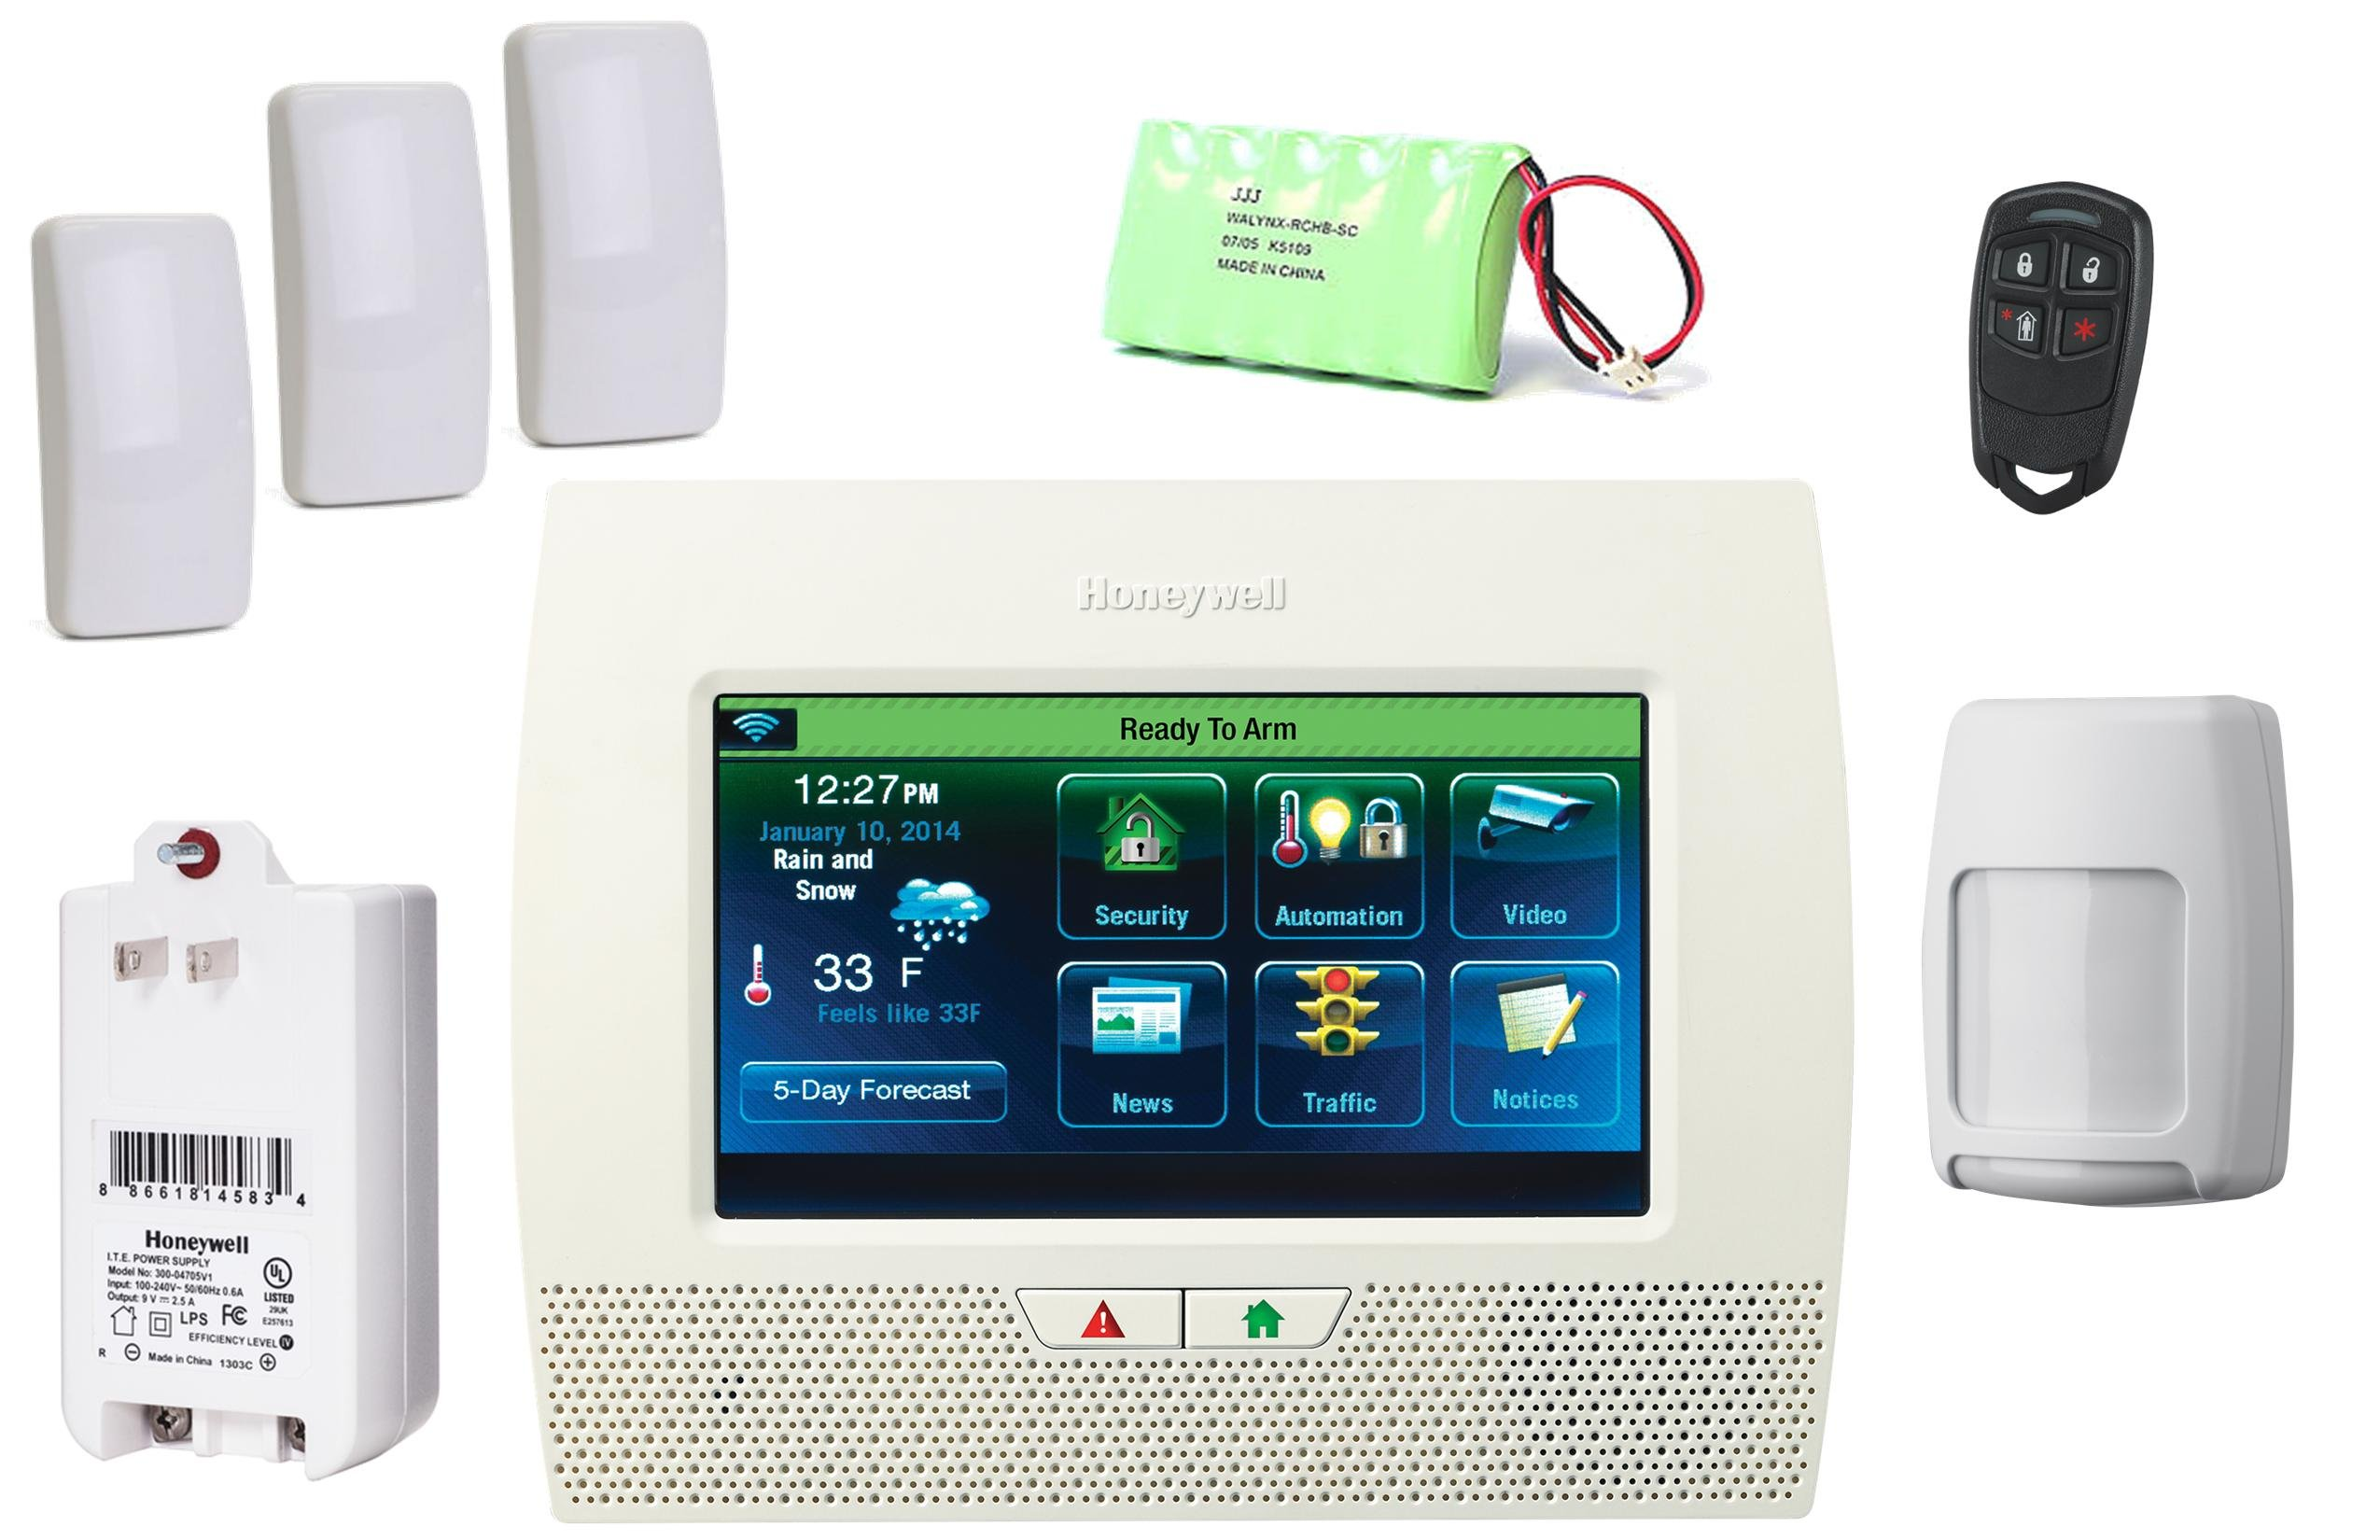 Honeywell Lynx Touch L7000 Wireless Security Alarm Slim Line Kit